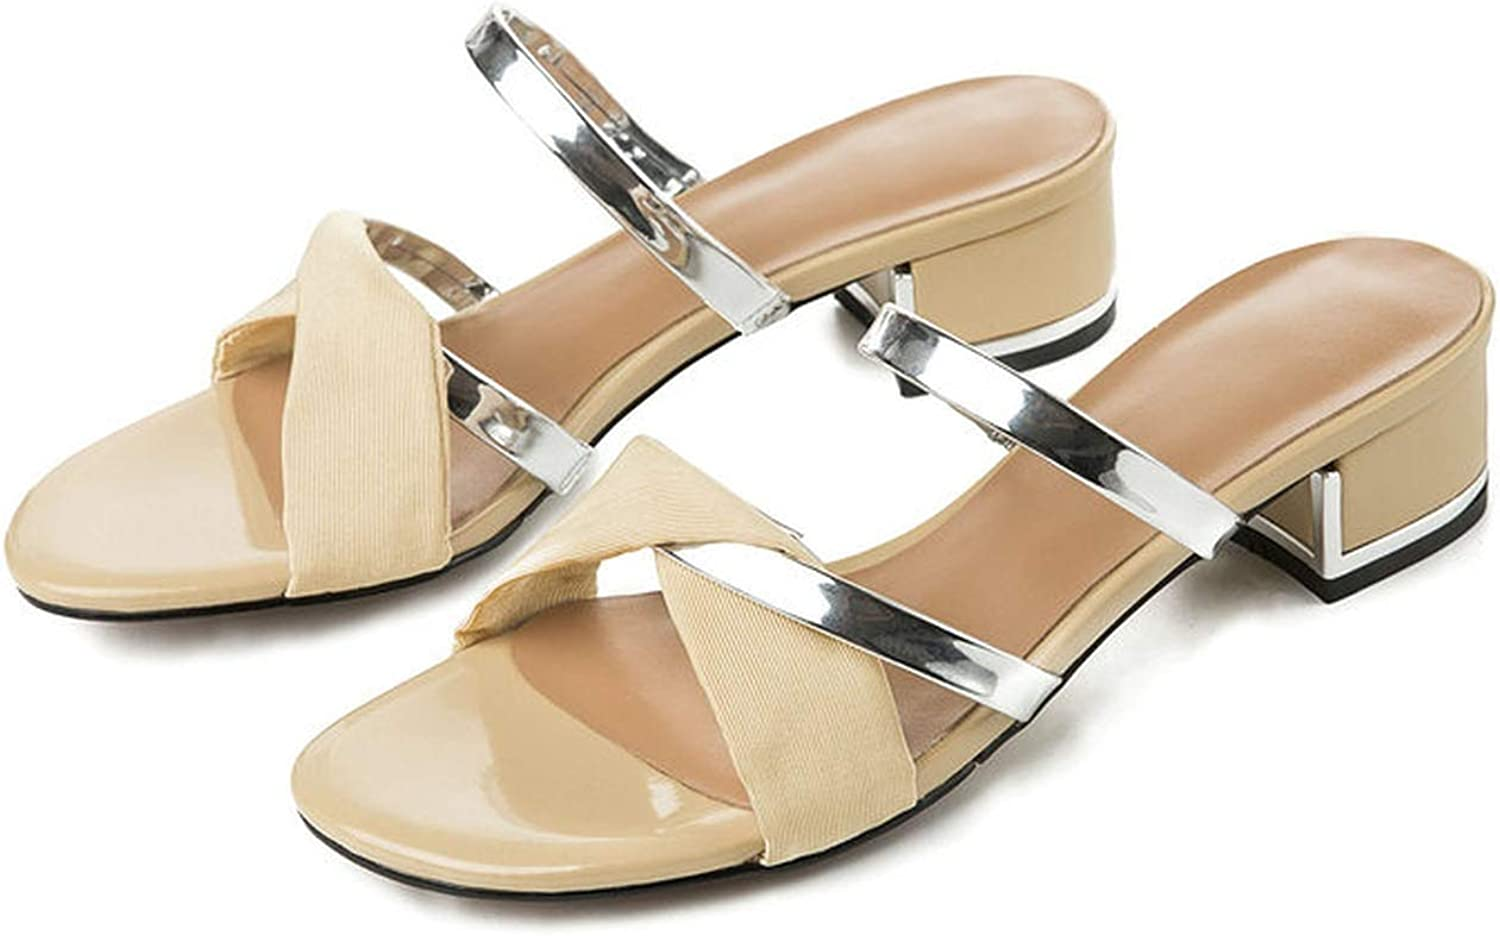 goldsmyth Women Slippers 3Cm Low Square Heels Lady Casual shoes New Woman Sandals Size 41 42